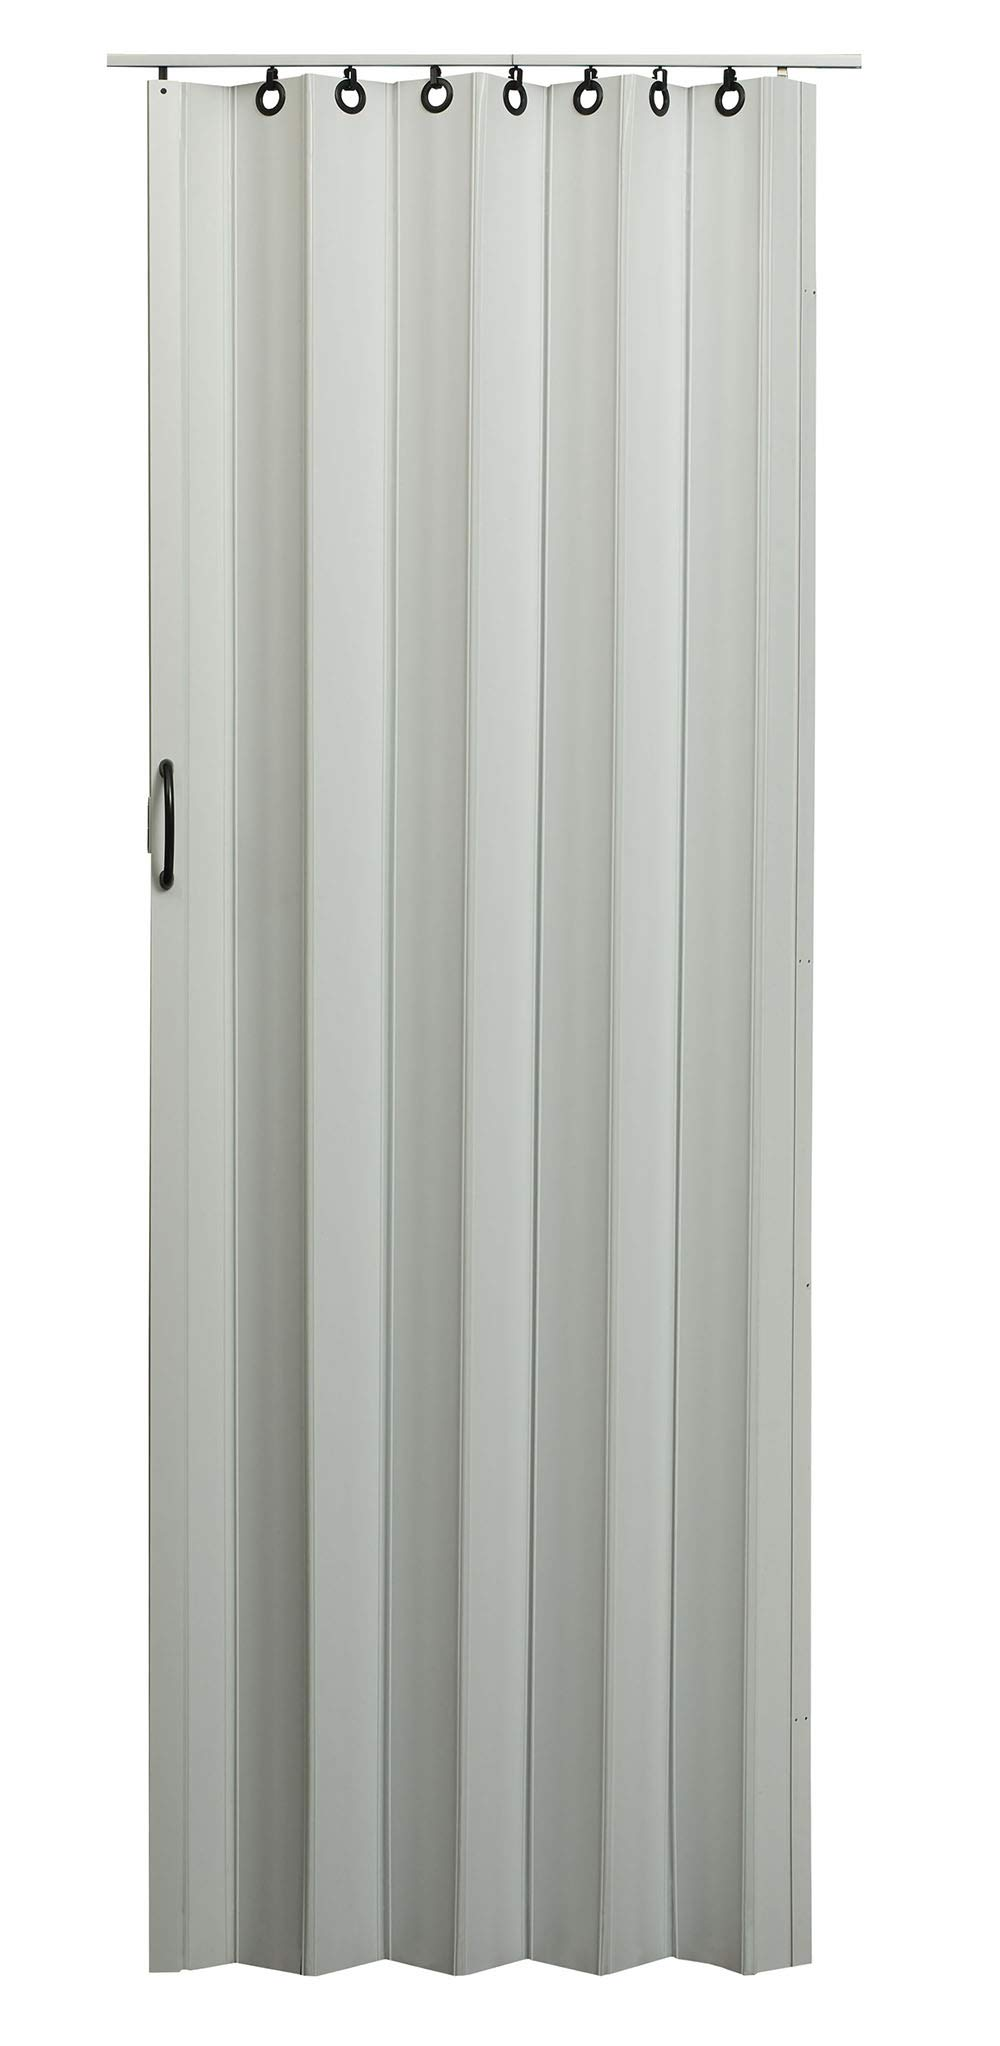 LTL Home Products NV3680H Nuevo Interior Accordion Folding Door, 36 x 80 Inches, White by LTL Home Products